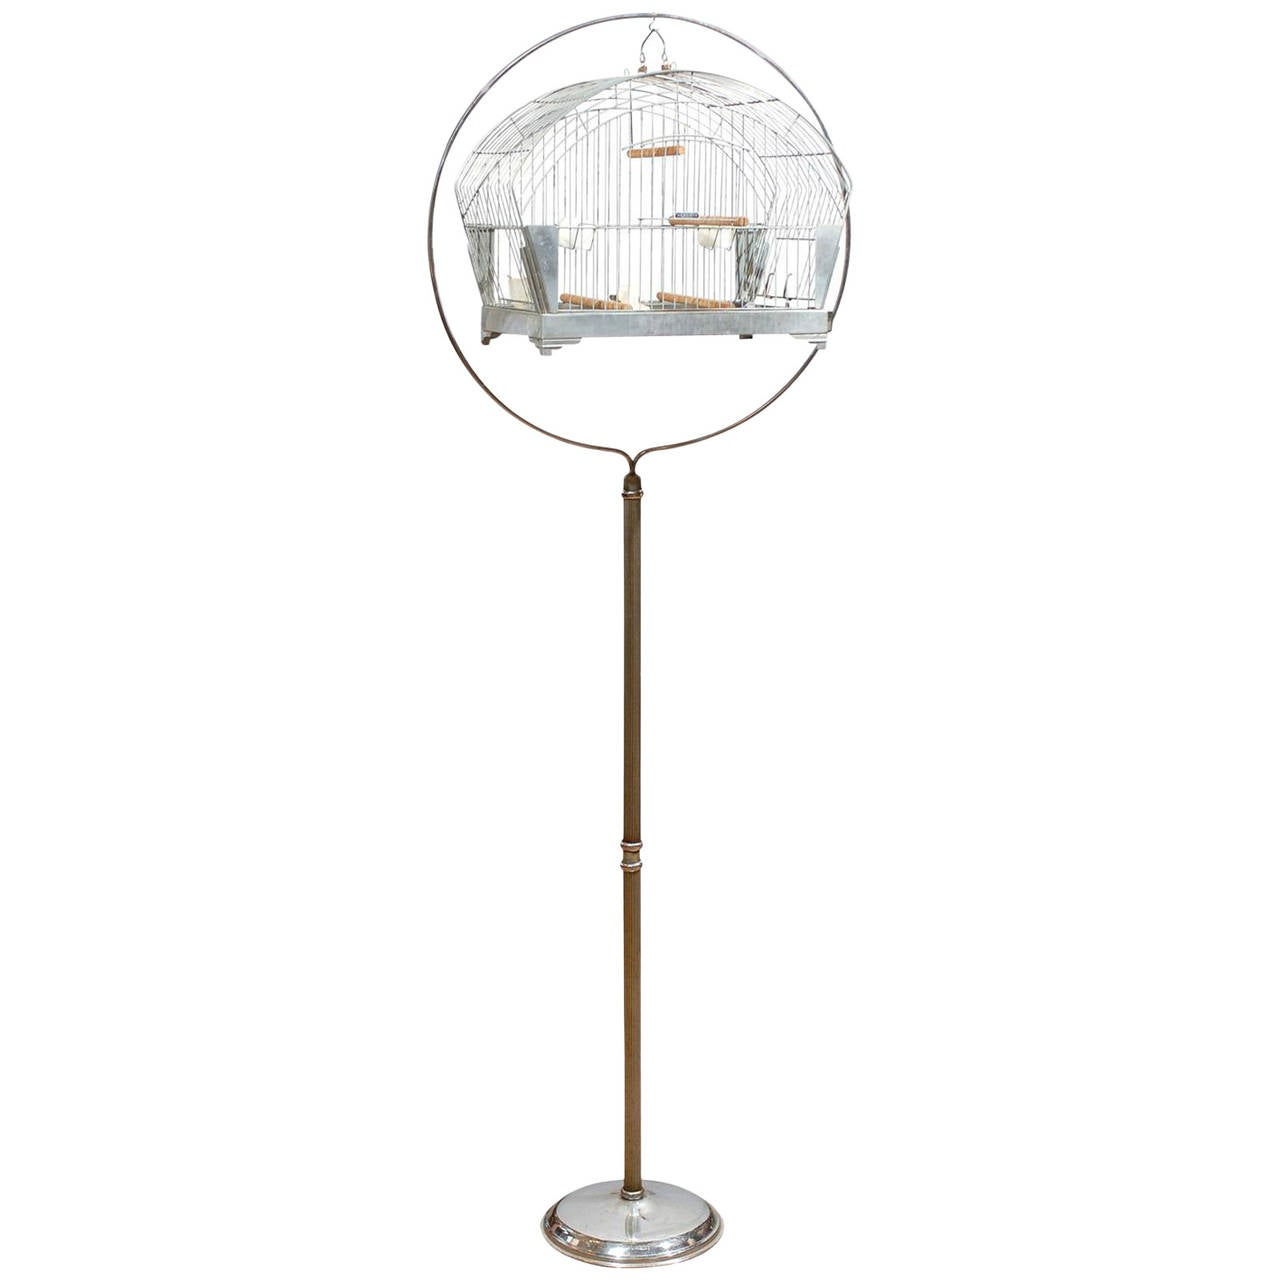 American Art Deco Bird Cage on Stand by Hendryx